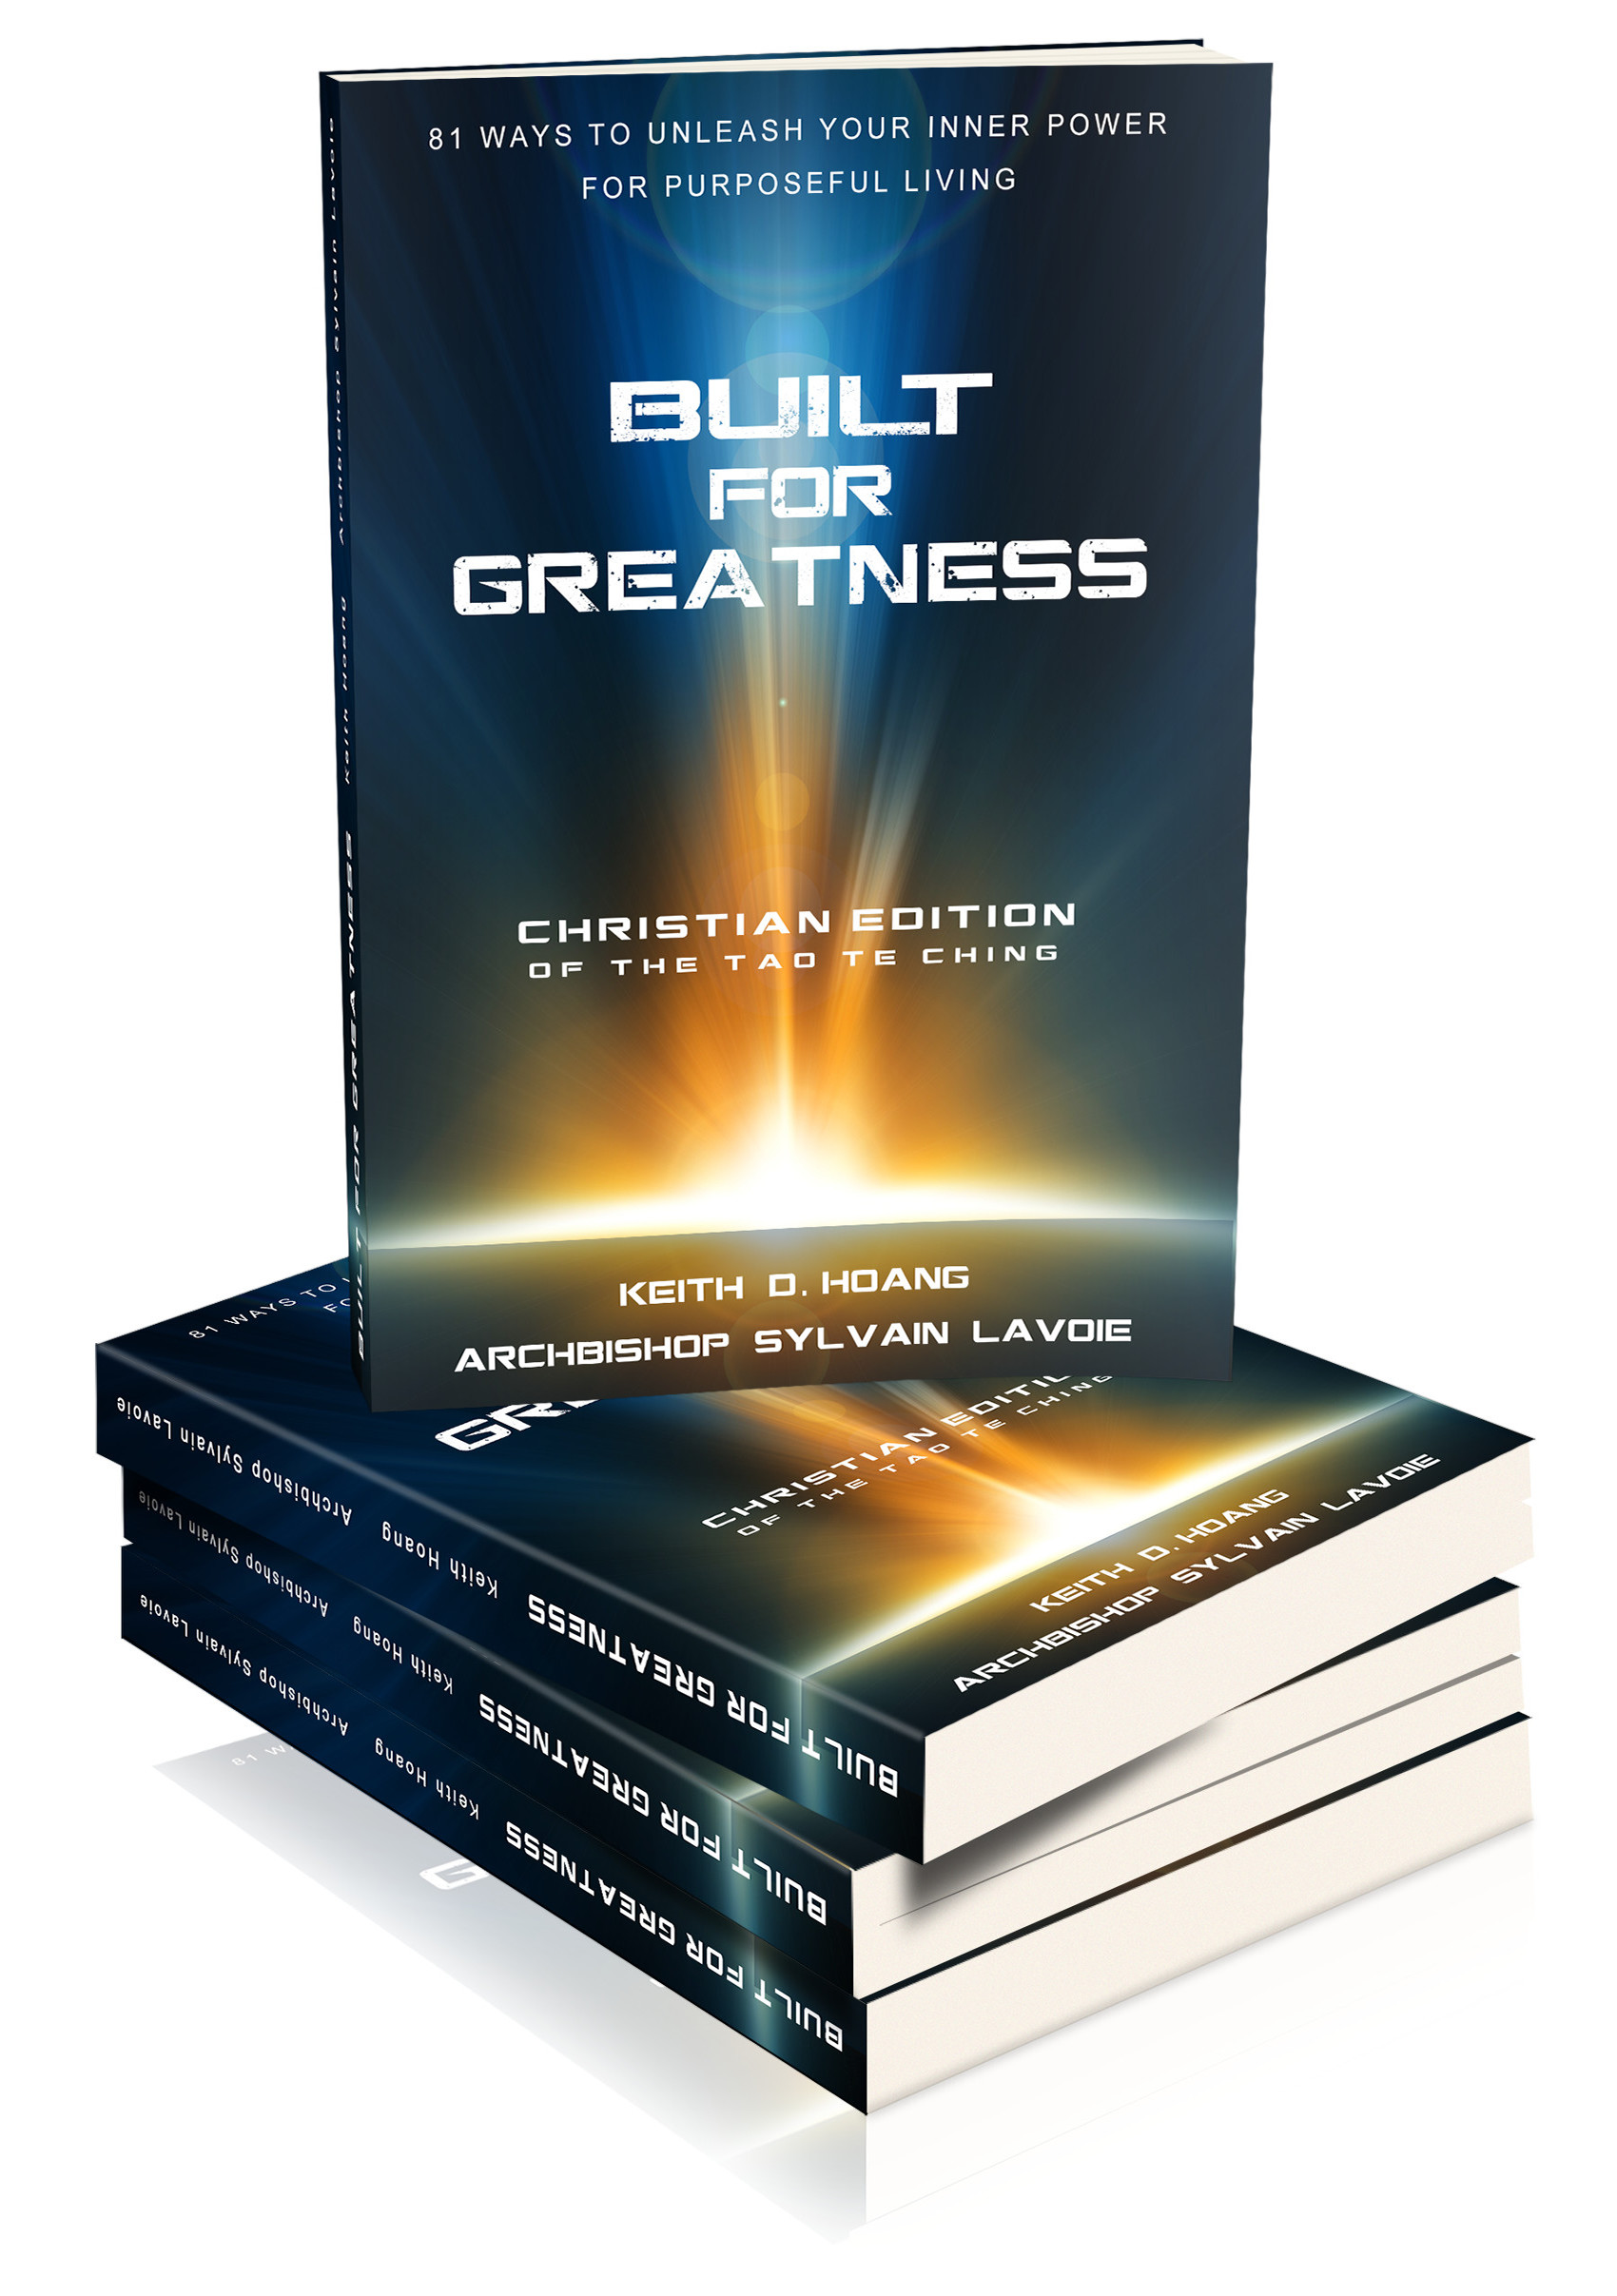 Built For Greatness - Your Path To God in Difficult Times - Coronaviris COVID-19